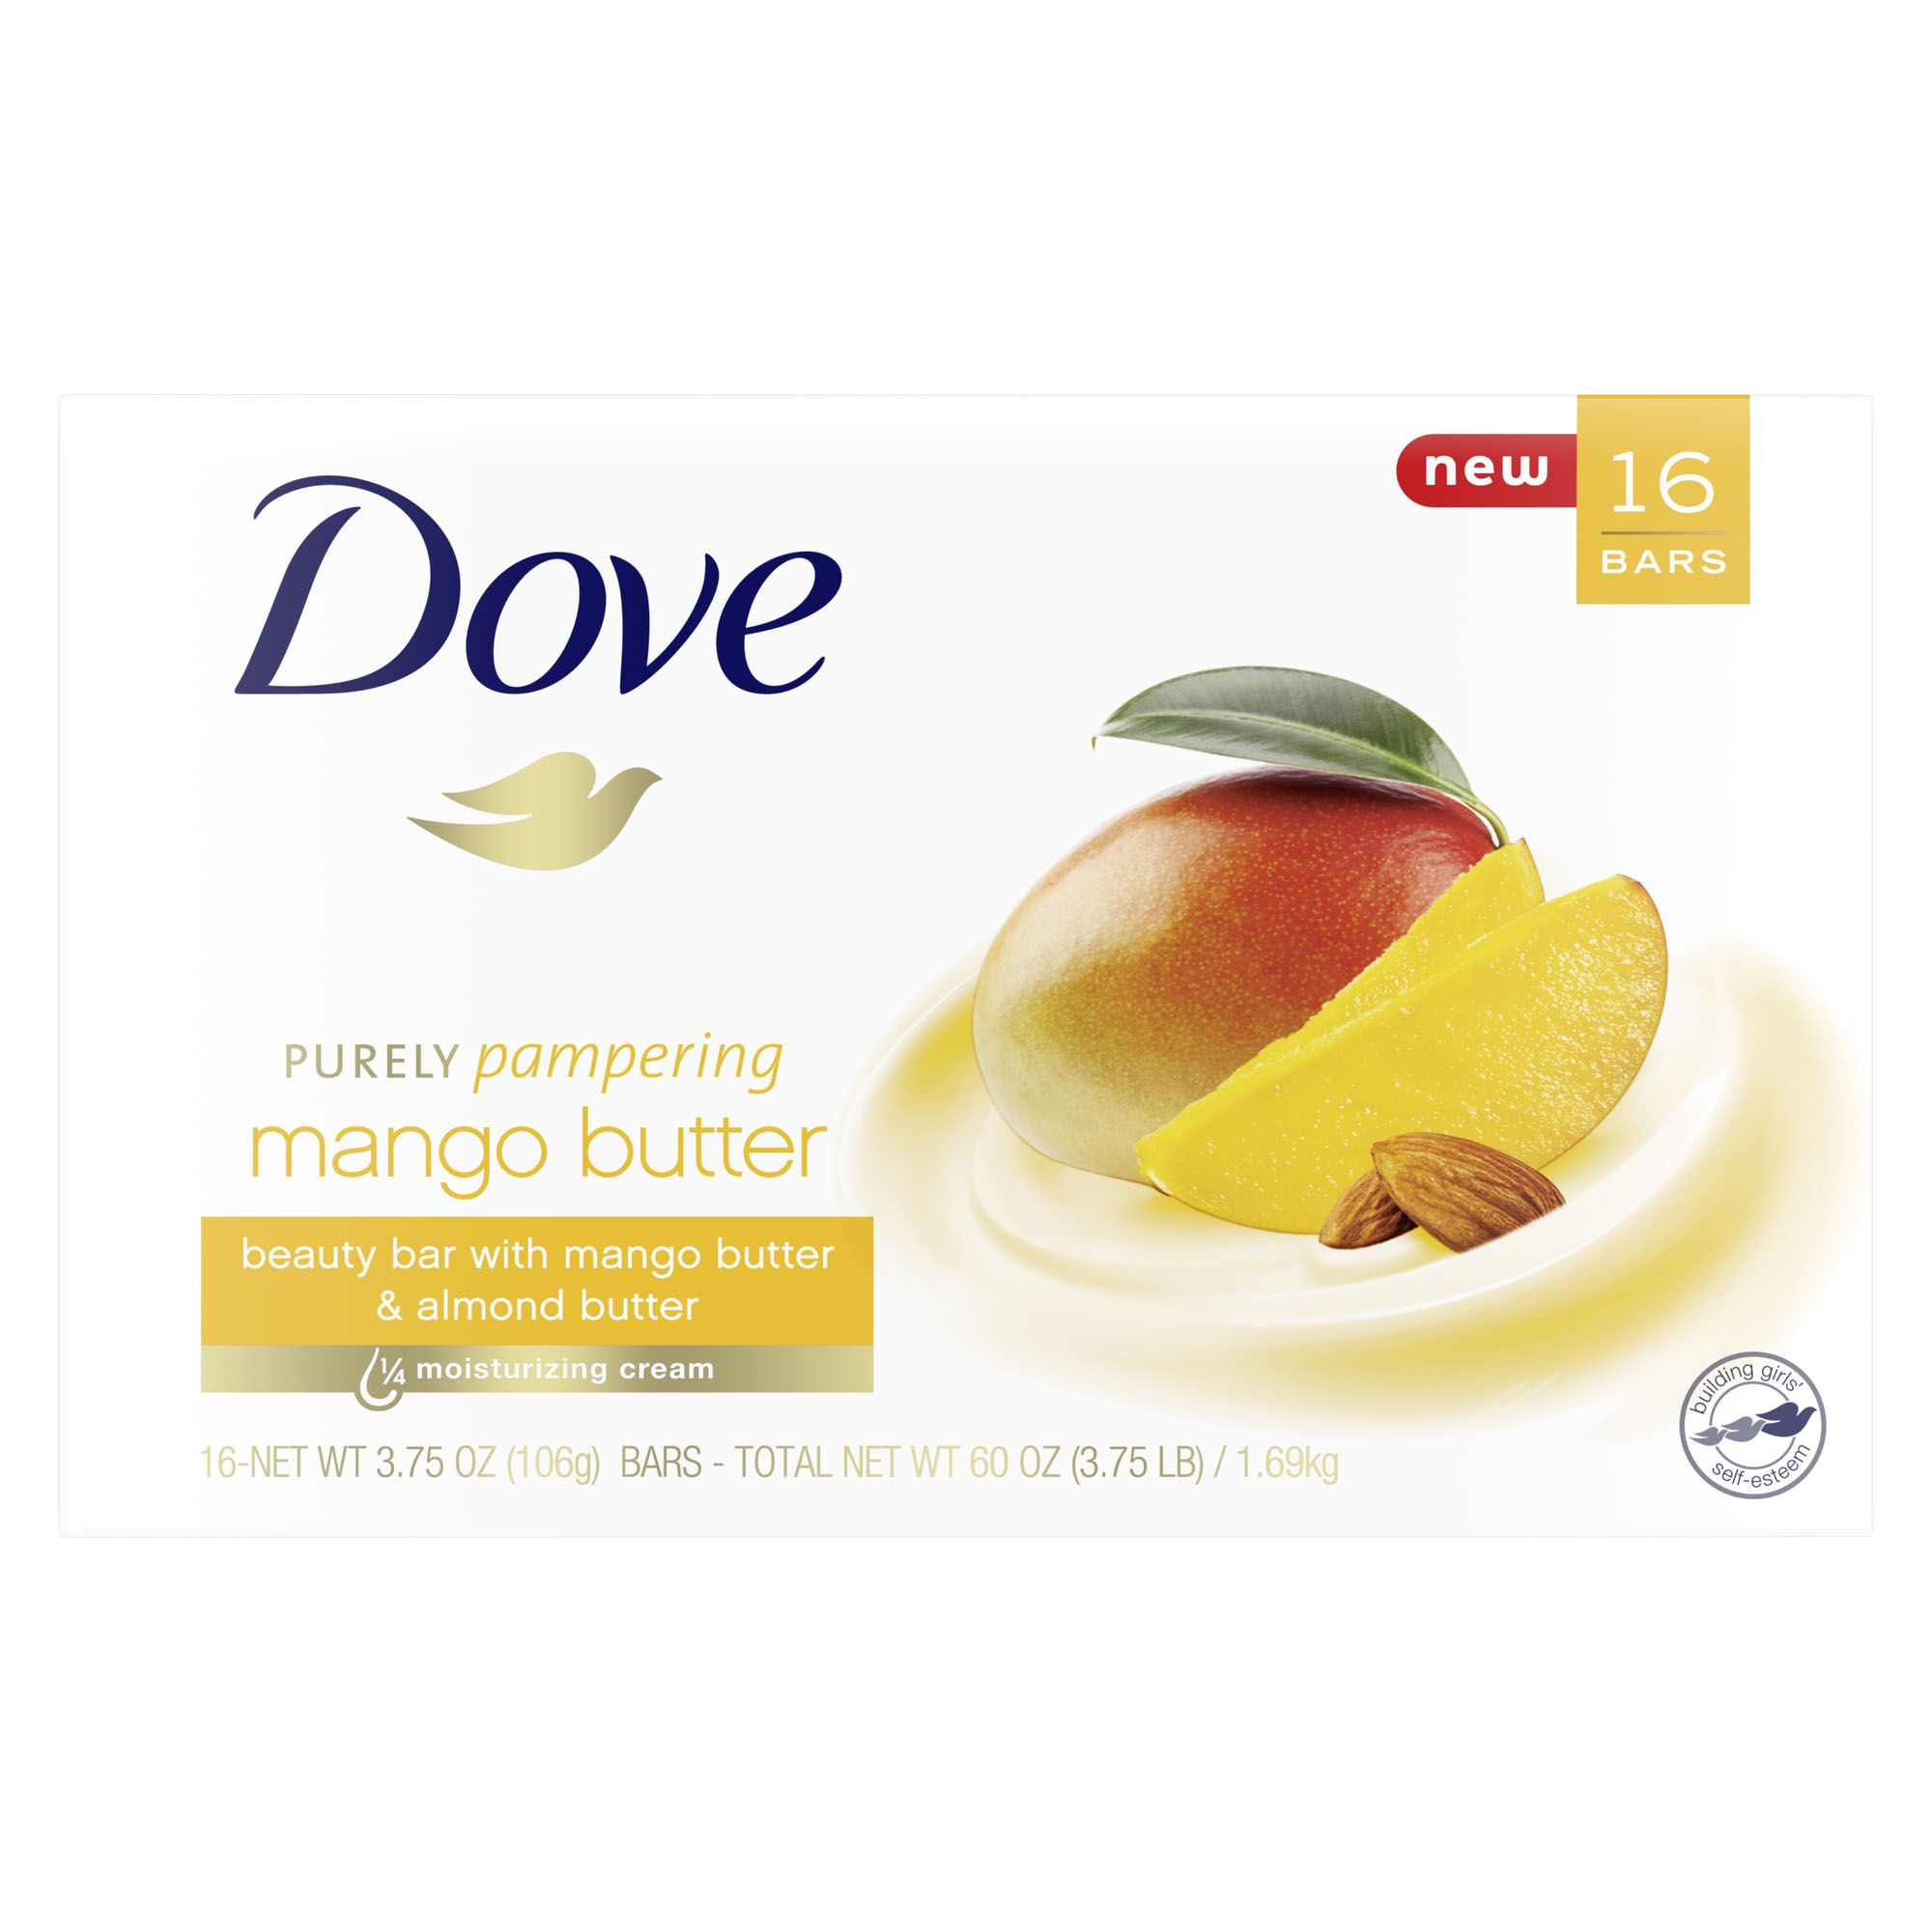 Dove Dove Mango Butter And Almond Butter Body Wash 3 Ct From Bj S Wholesale Club Daily Mail